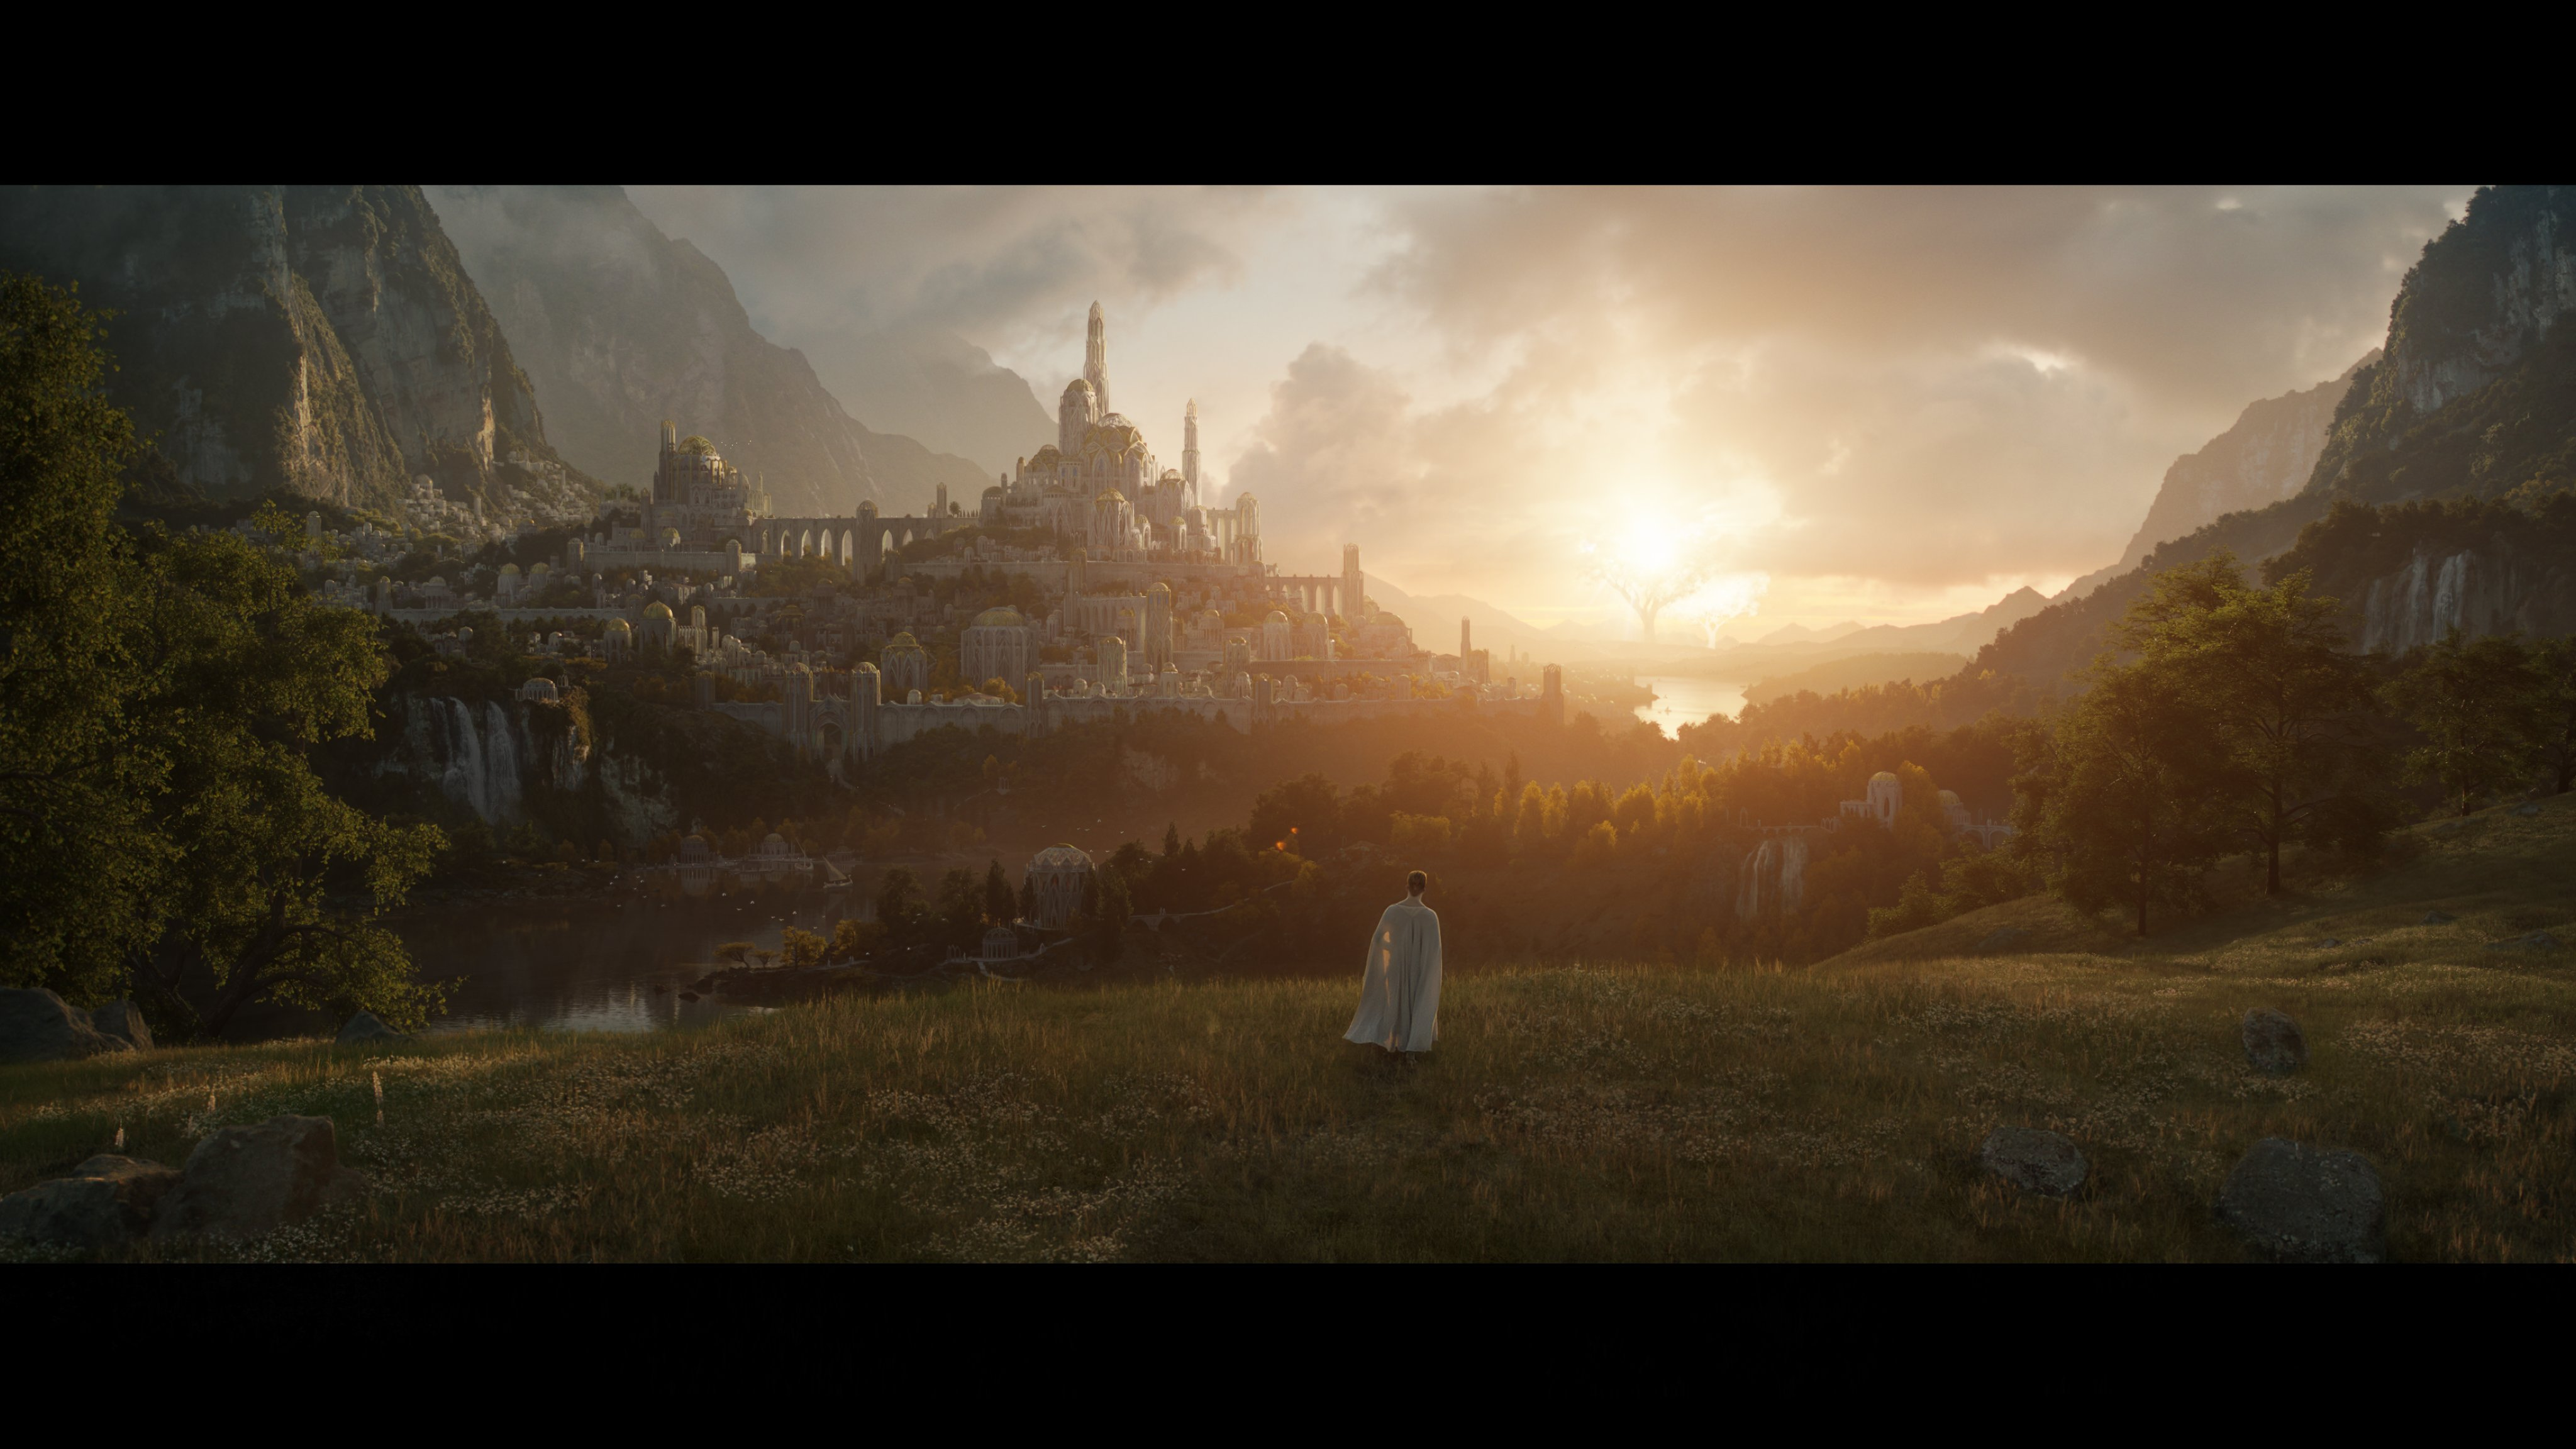 The Lord of the Rings: Second season of the Amazon series changes location